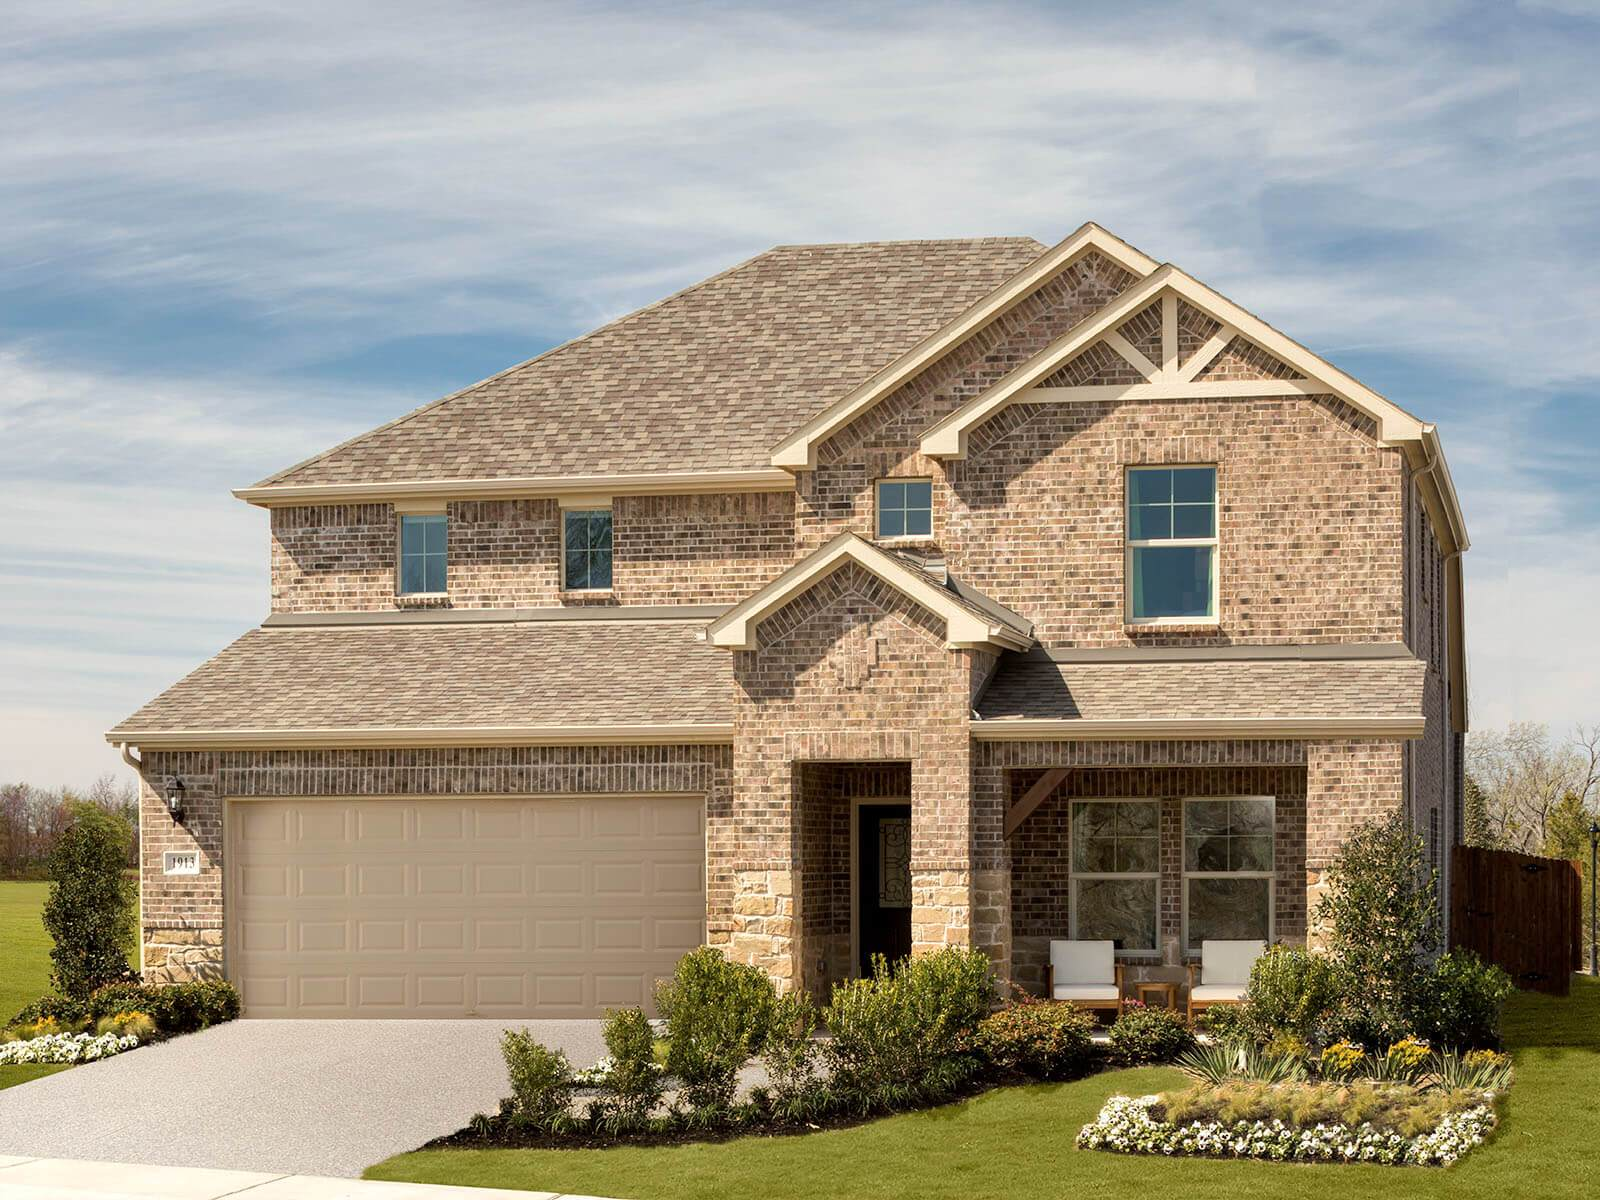 Welcome to the Bexar, featured at The Quarry at Stoneridge.